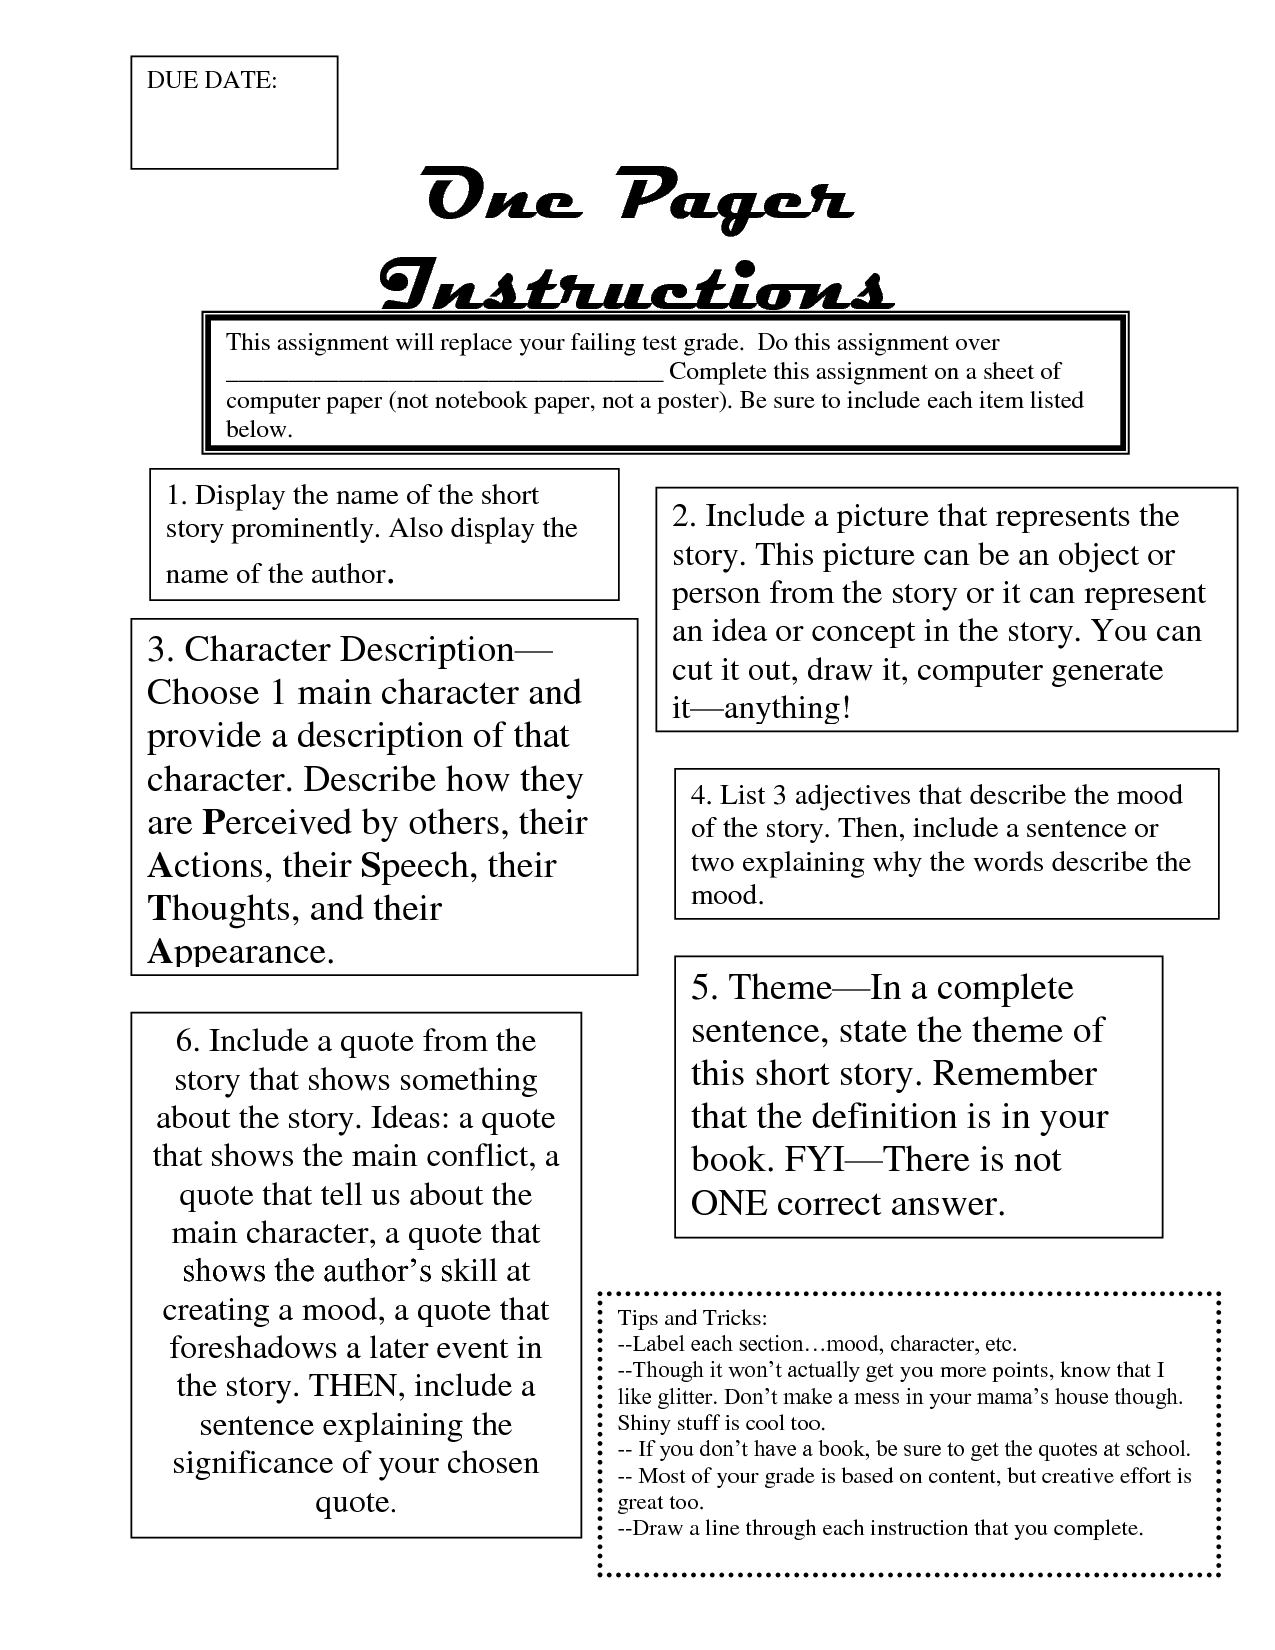 "response paper instructions Contemporary issues in sustainability response paper instructions and scoring rubric one page, 1"" margins, 12-pt type, double-spaced three paragraphs."